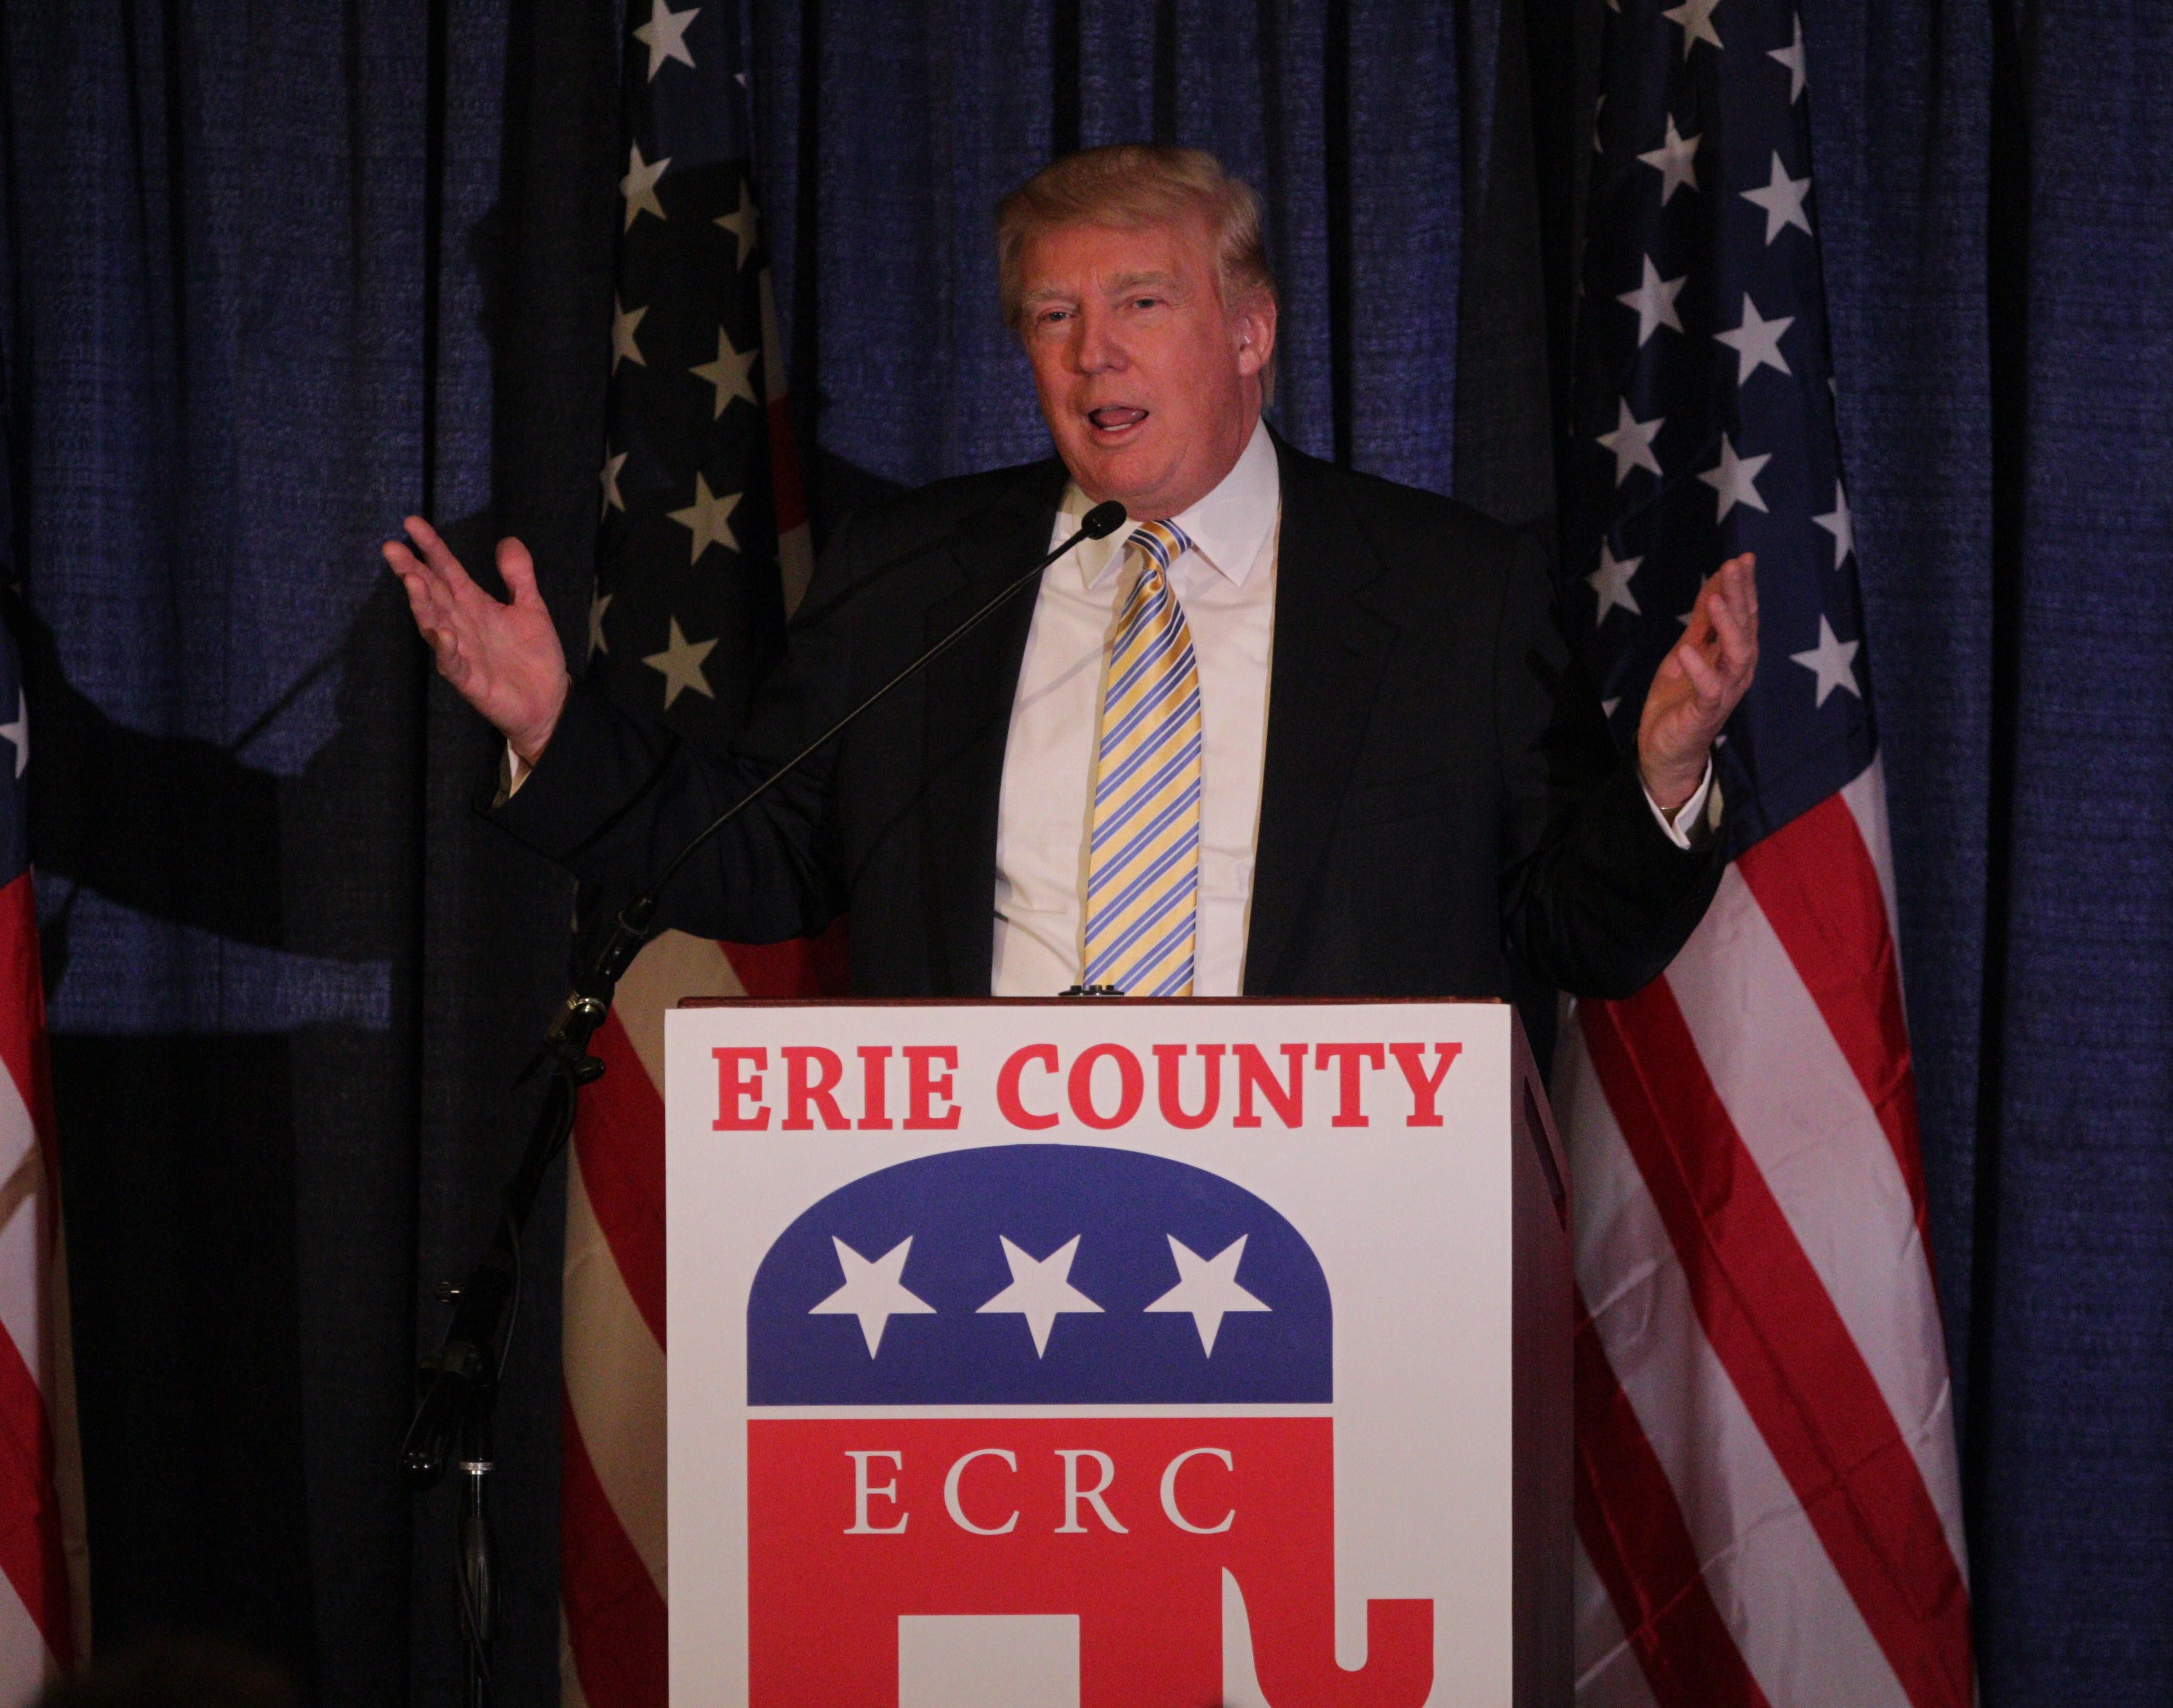 Donald Trump was the guest of honor and keynote speaker at the Erie County Republican Committee Lincoln Leadership Reception at Salvatore's Italian Gardens , Friday, Jan. 31, 2014.  (Sharon Cantillon/Buffalo News)